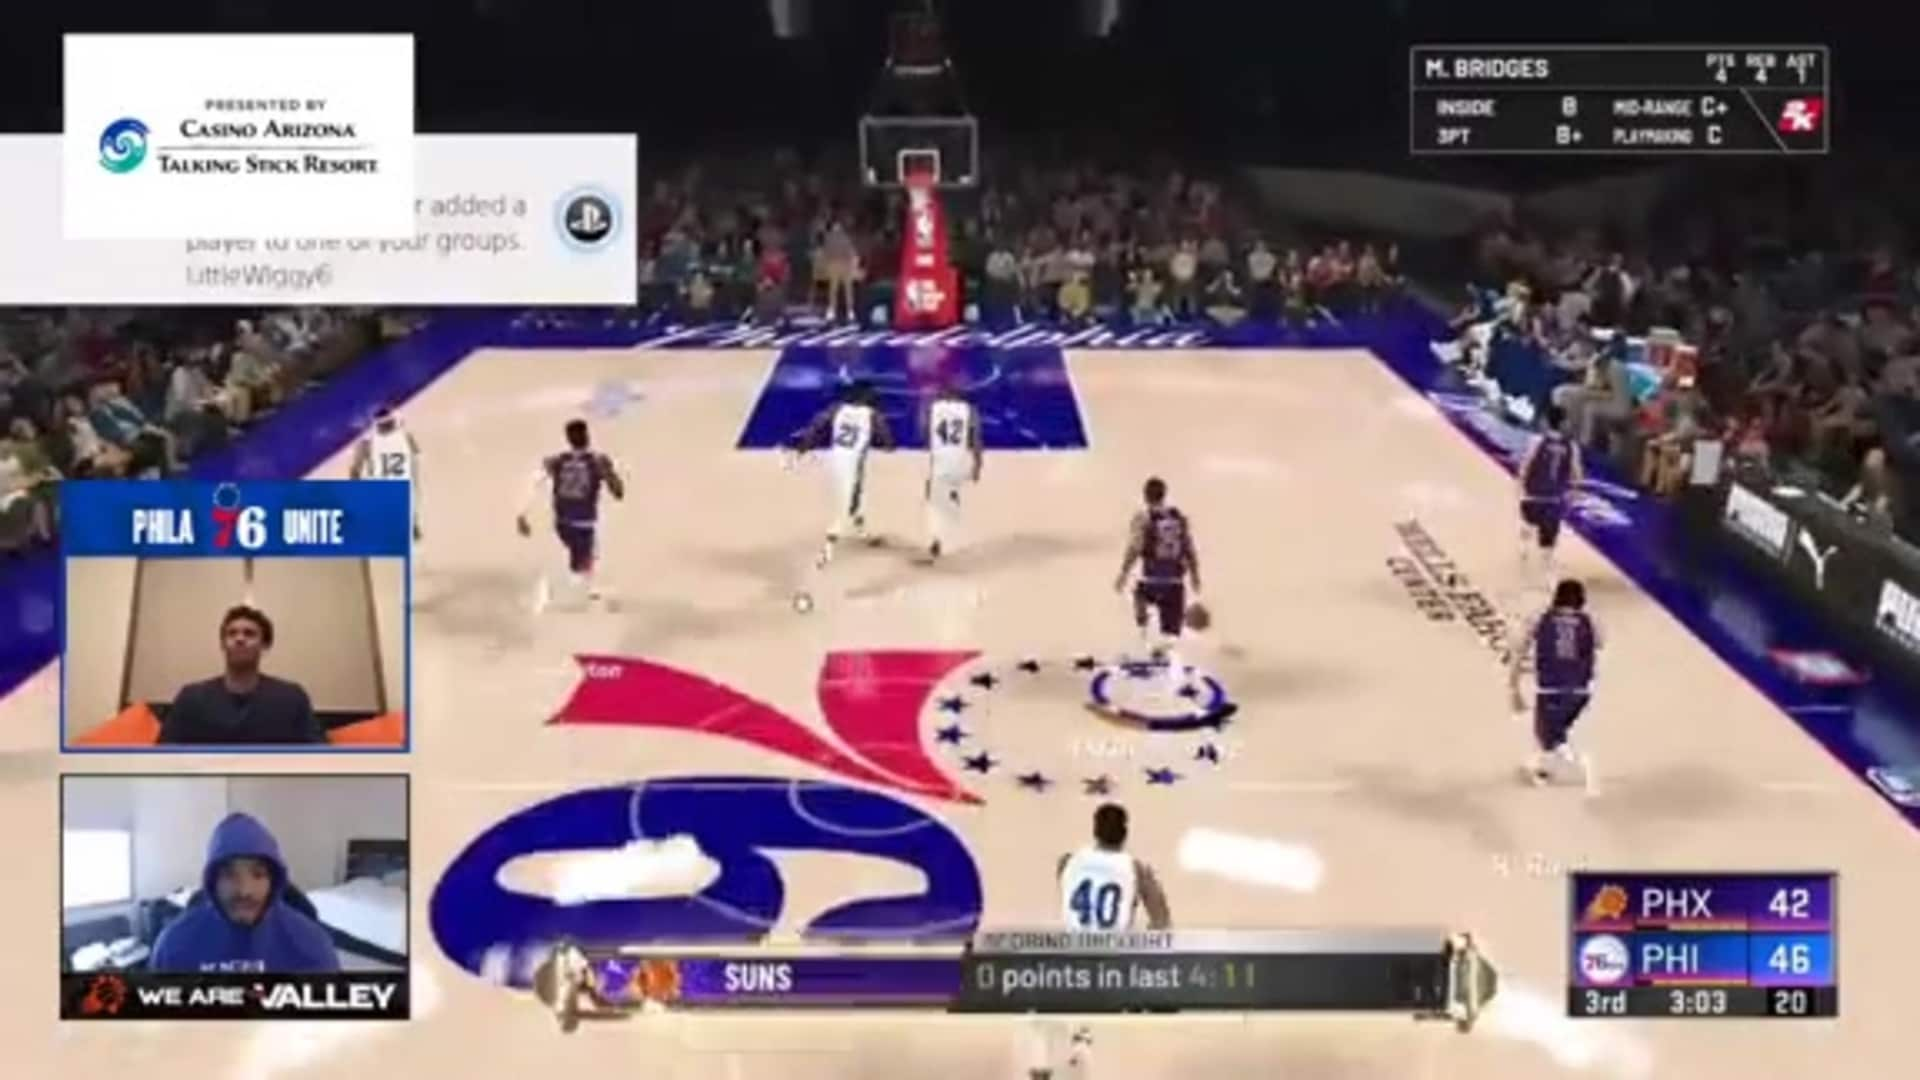 Ayton Slam on Fastbreak vs 76ers on 2K20